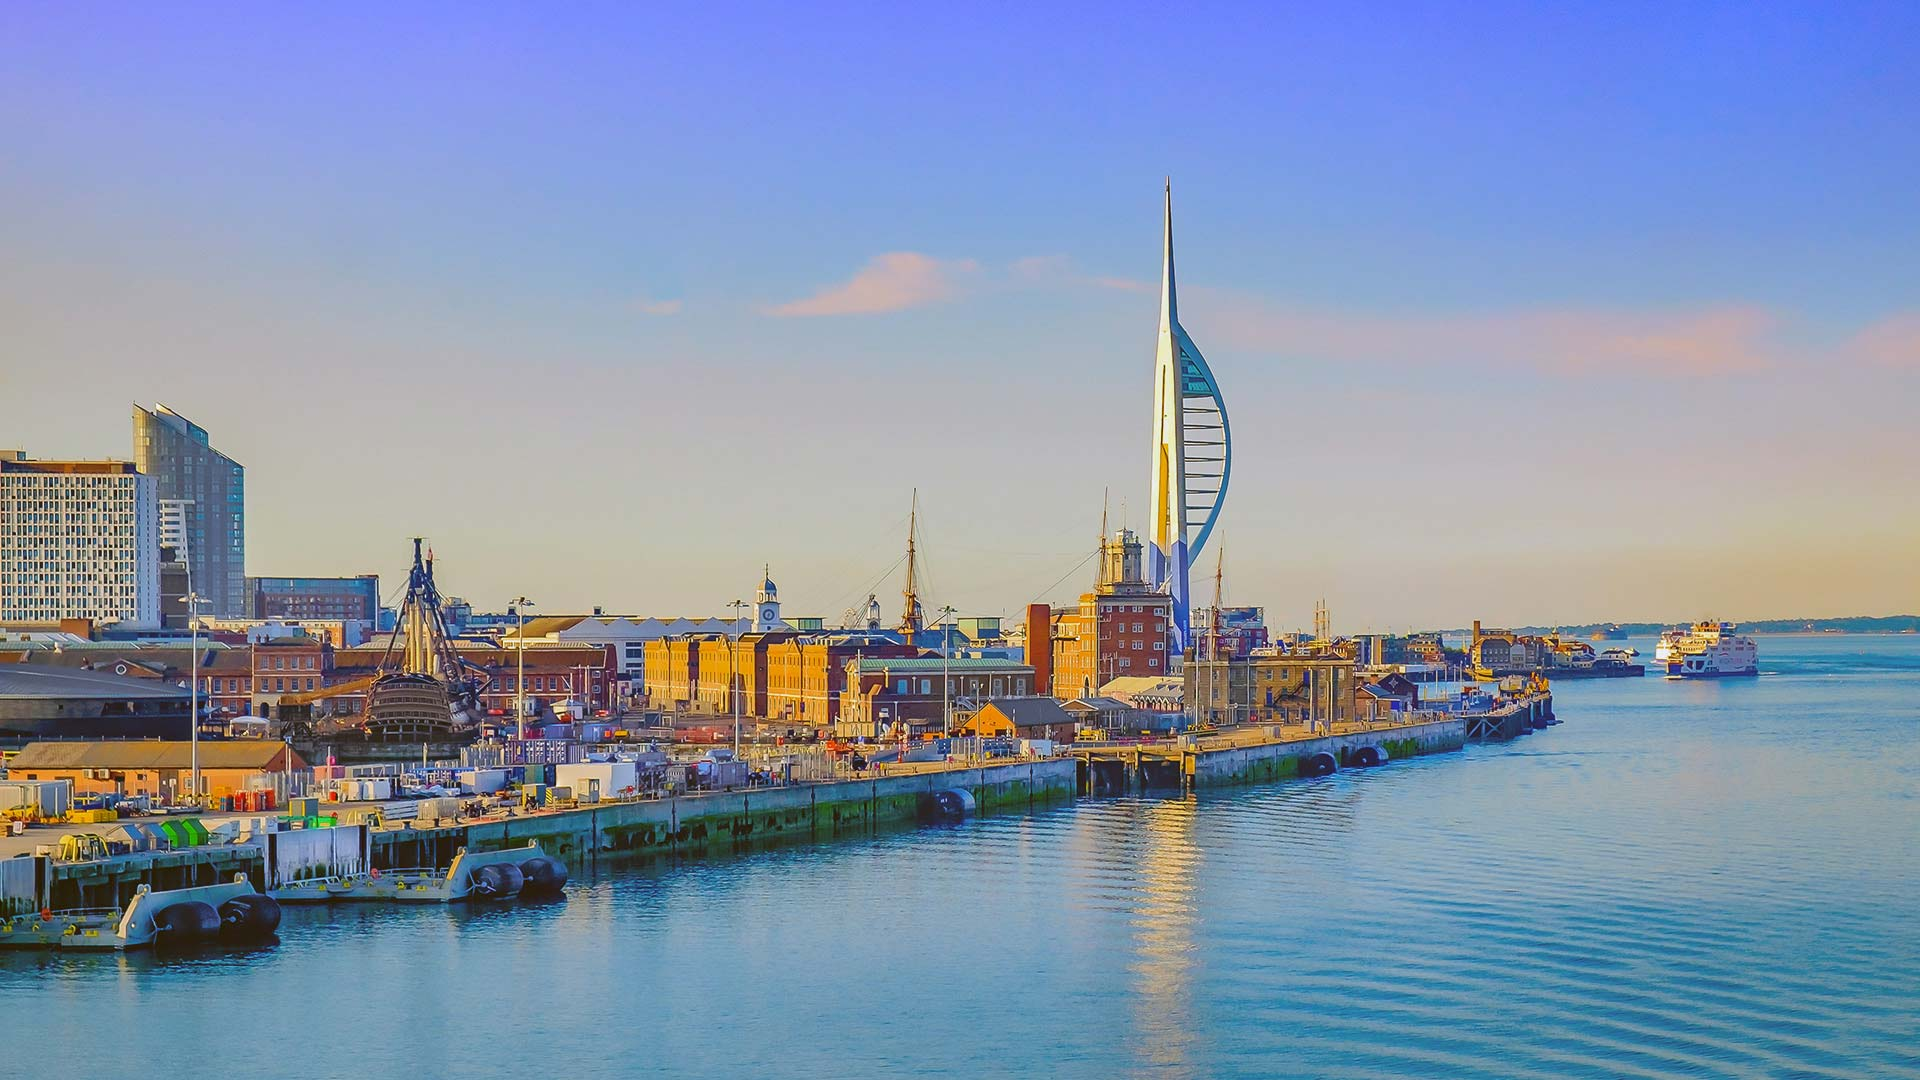 Panorama to illustrate dating in portsmouth